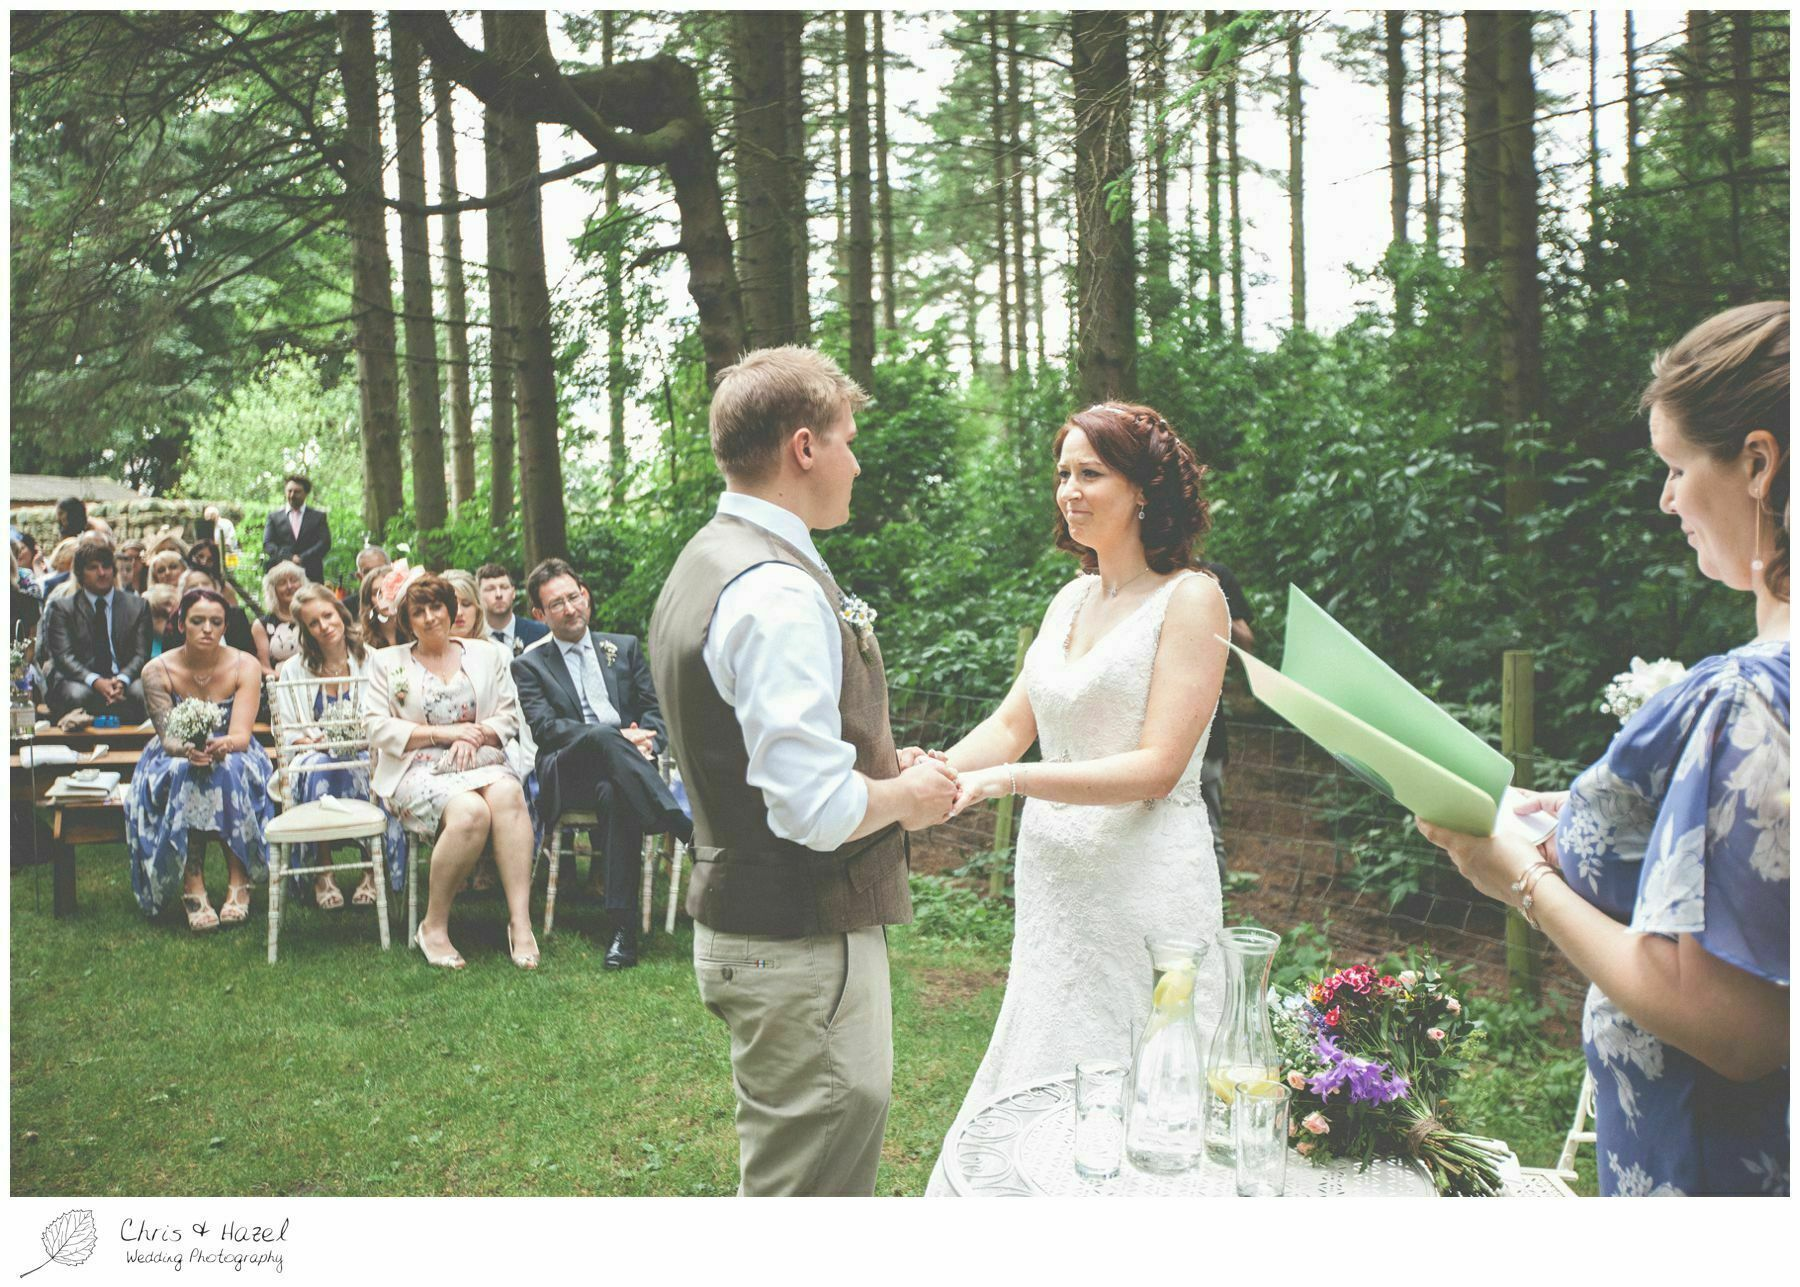 ring exchange, vows, woodland ceremony, woodland, forest, ceremony, outdoor, forest wedding, woodland wedding, eco wedding, love letters, wedding, Eccup Wedding Photographer, Lineham Farm, Wedding Photography Leeds, Chris and Hazel Wedding Photography, Richard Wyatt, Laura Kelly